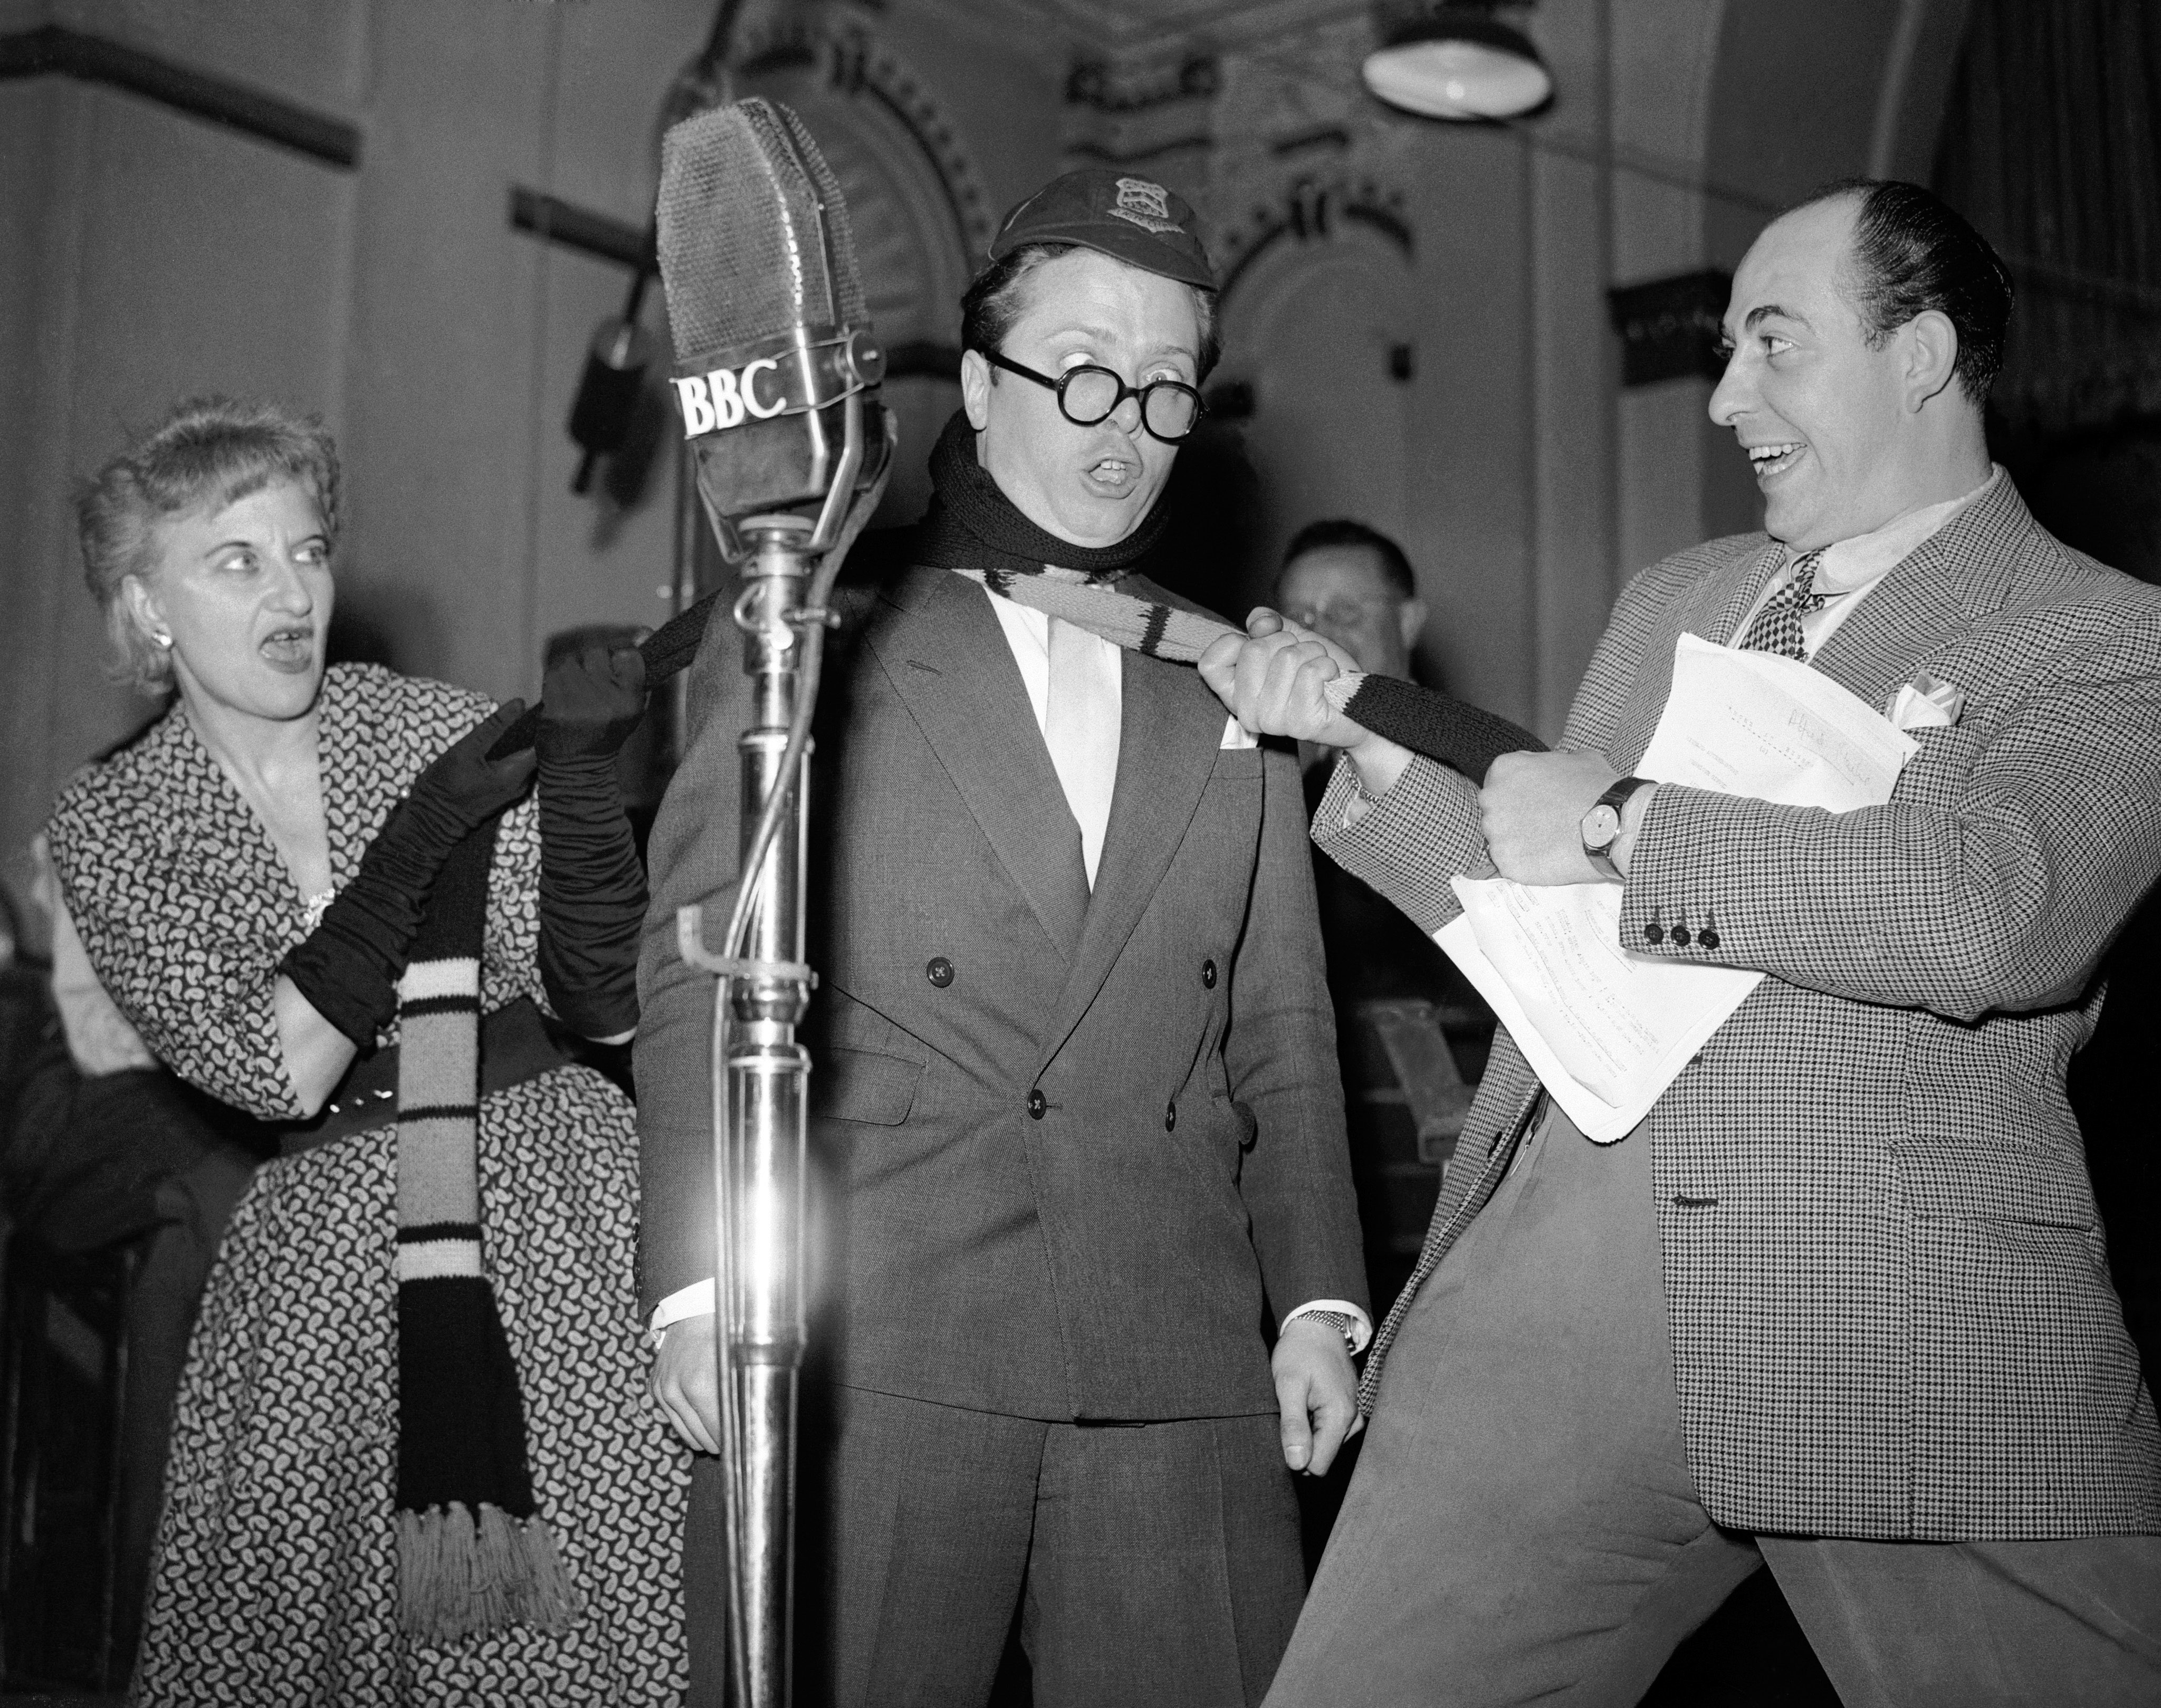 Hermione Gingold, Richard Attenborough and Alfred Marks recording the BBC radio show 'Home at Eight', 1952.